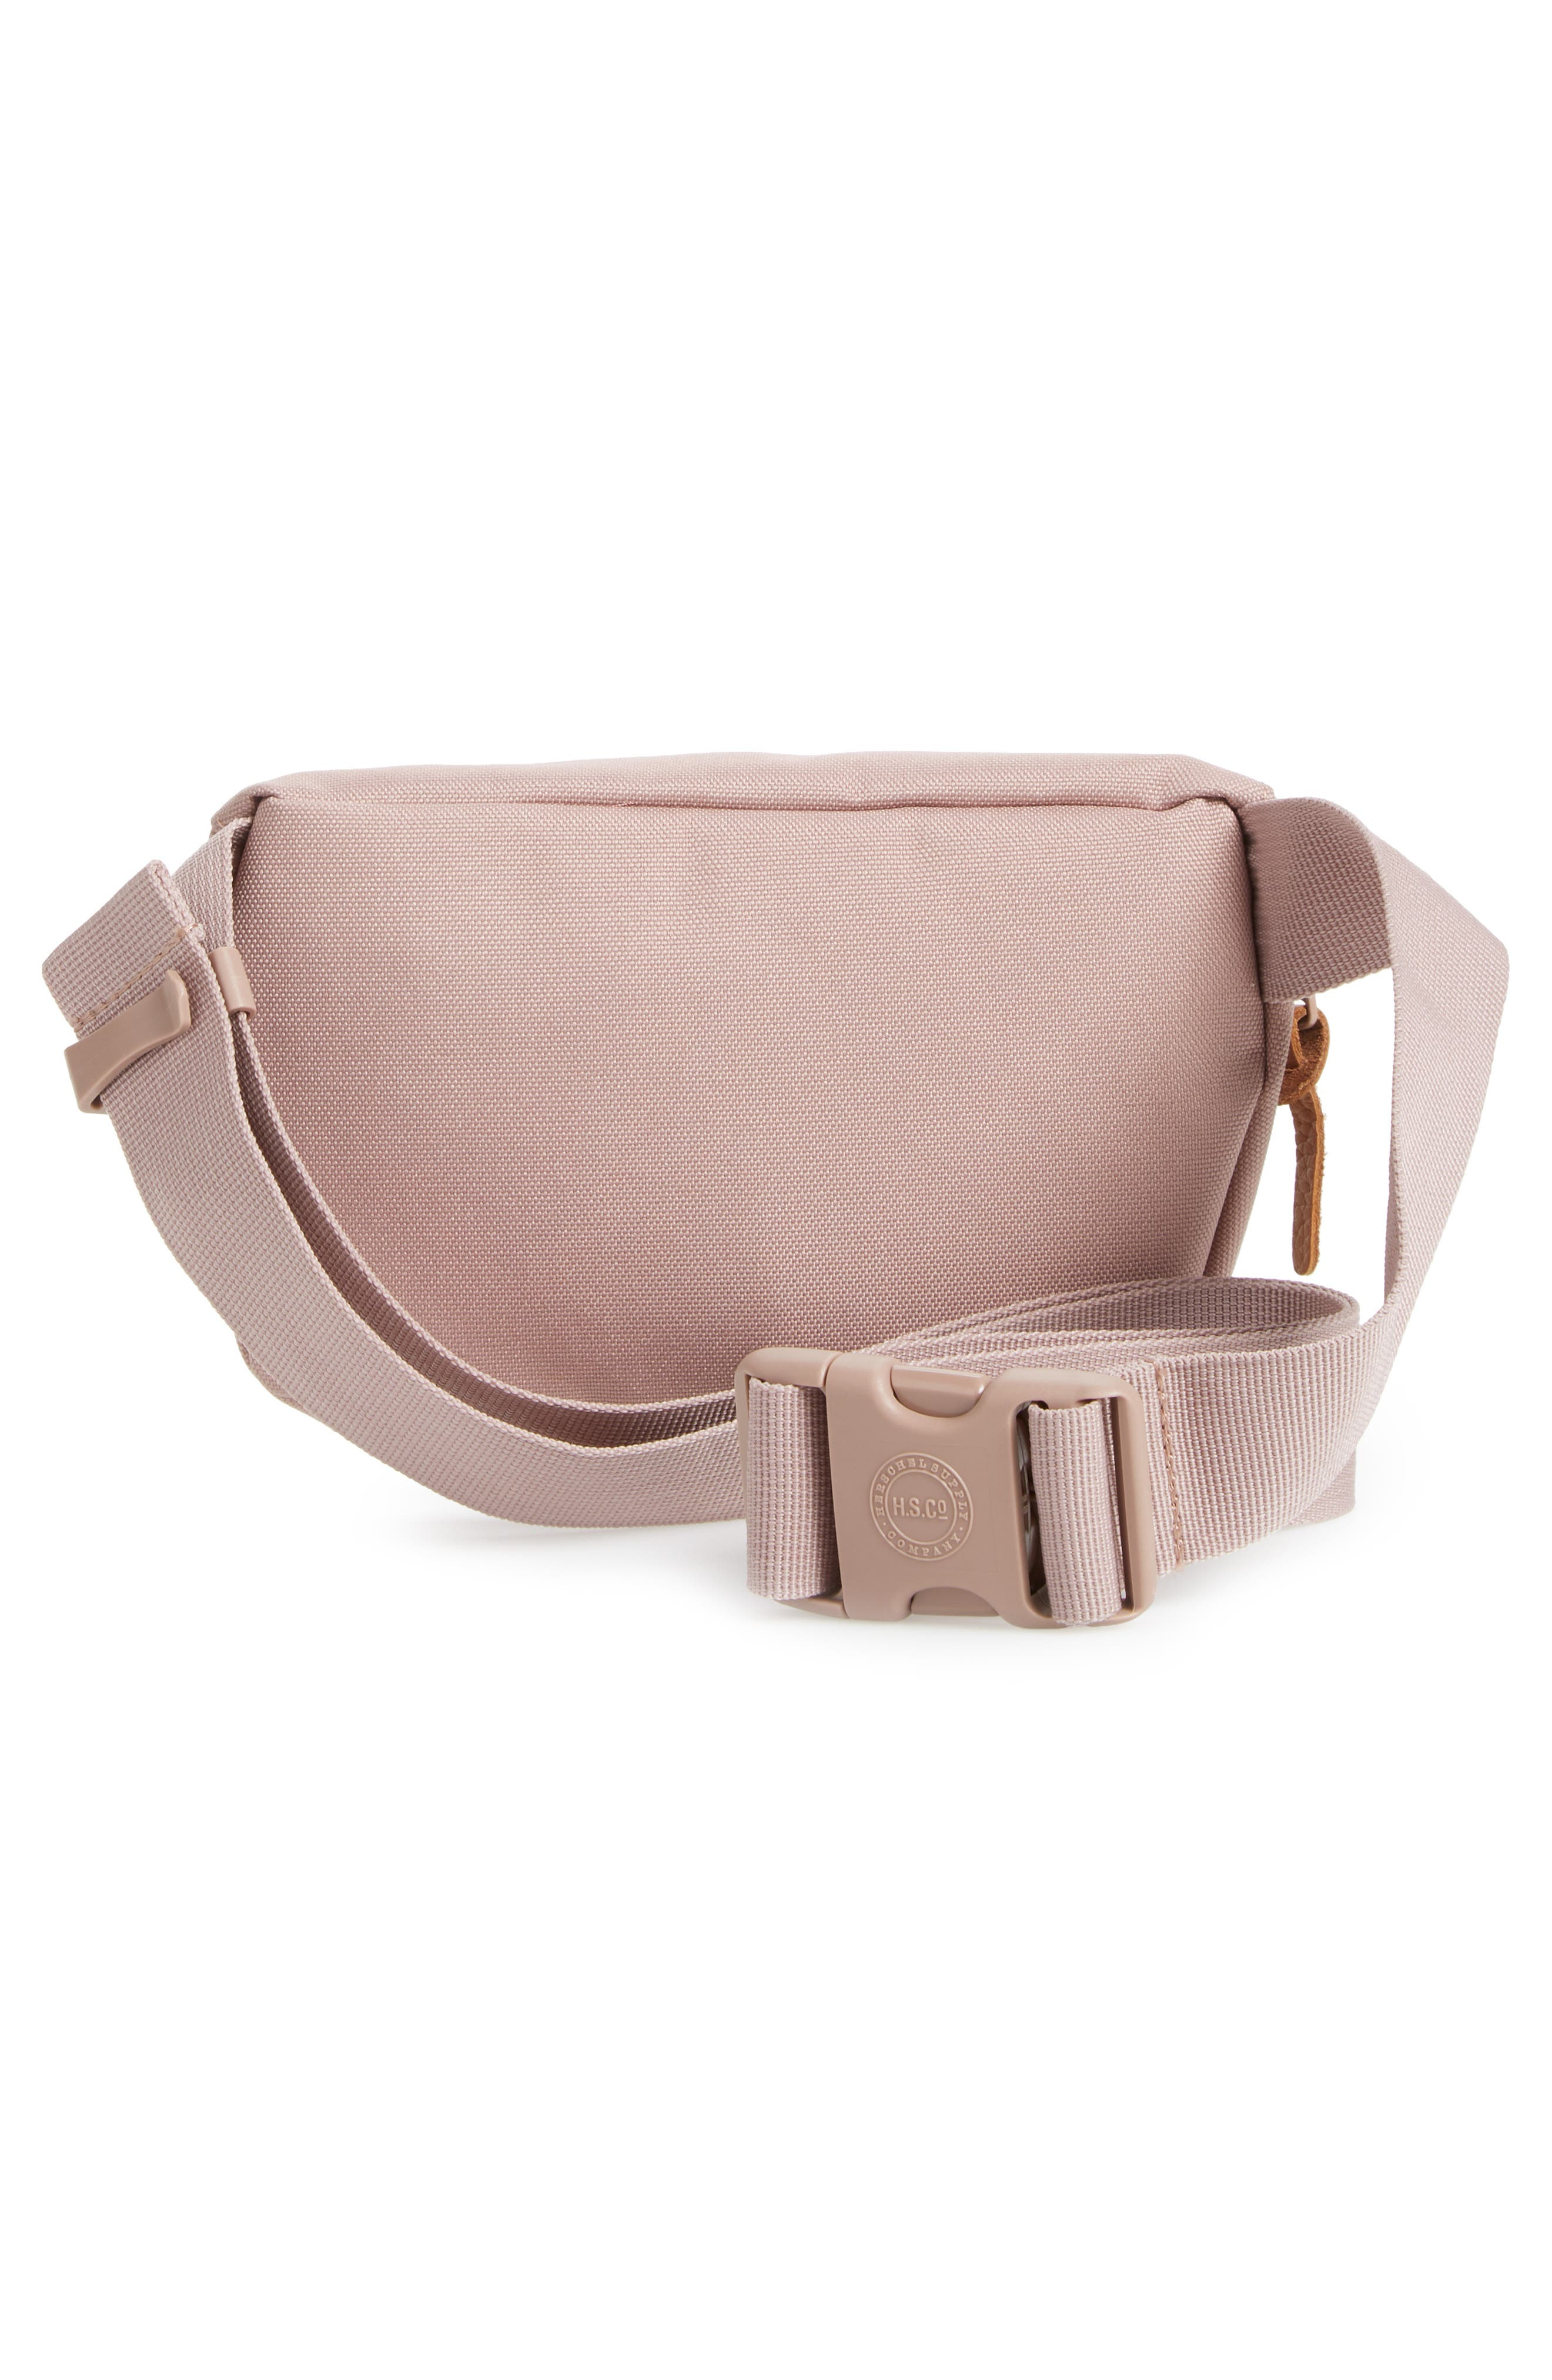 Fourteen Belt Bag,                             Alternate thumbnail 4, color,                             ASH ROSE